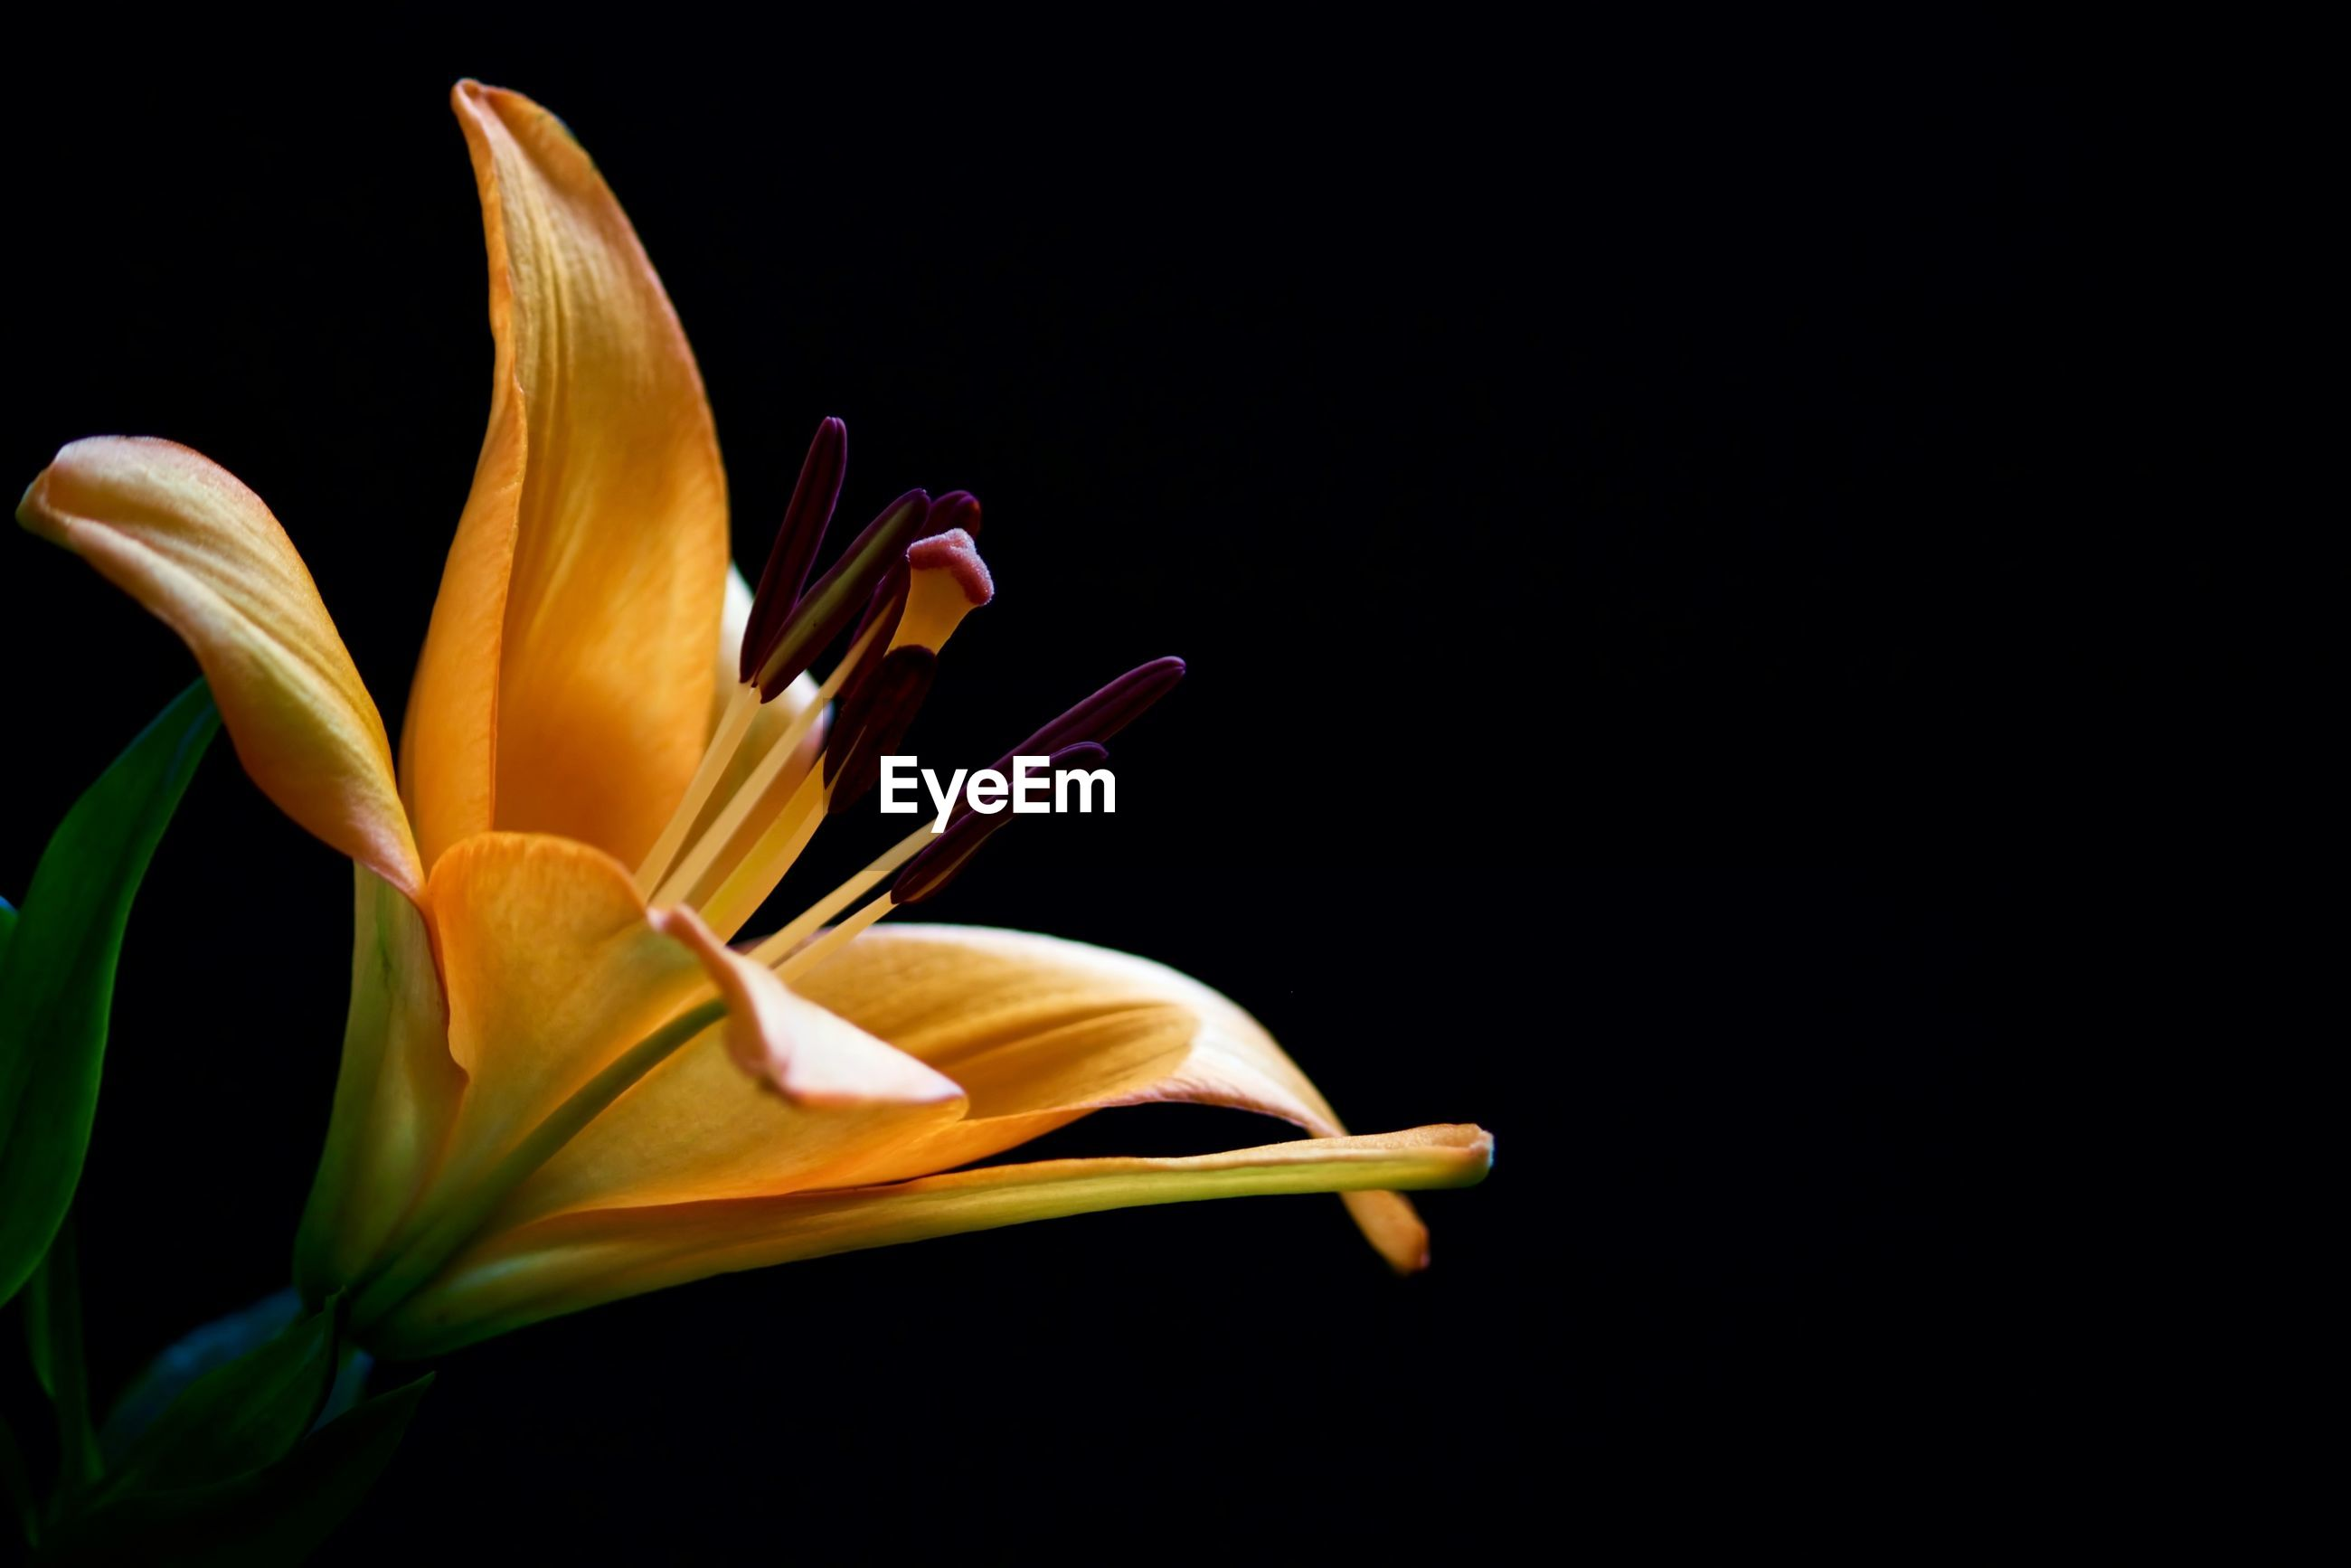 Close-up of lily against black background